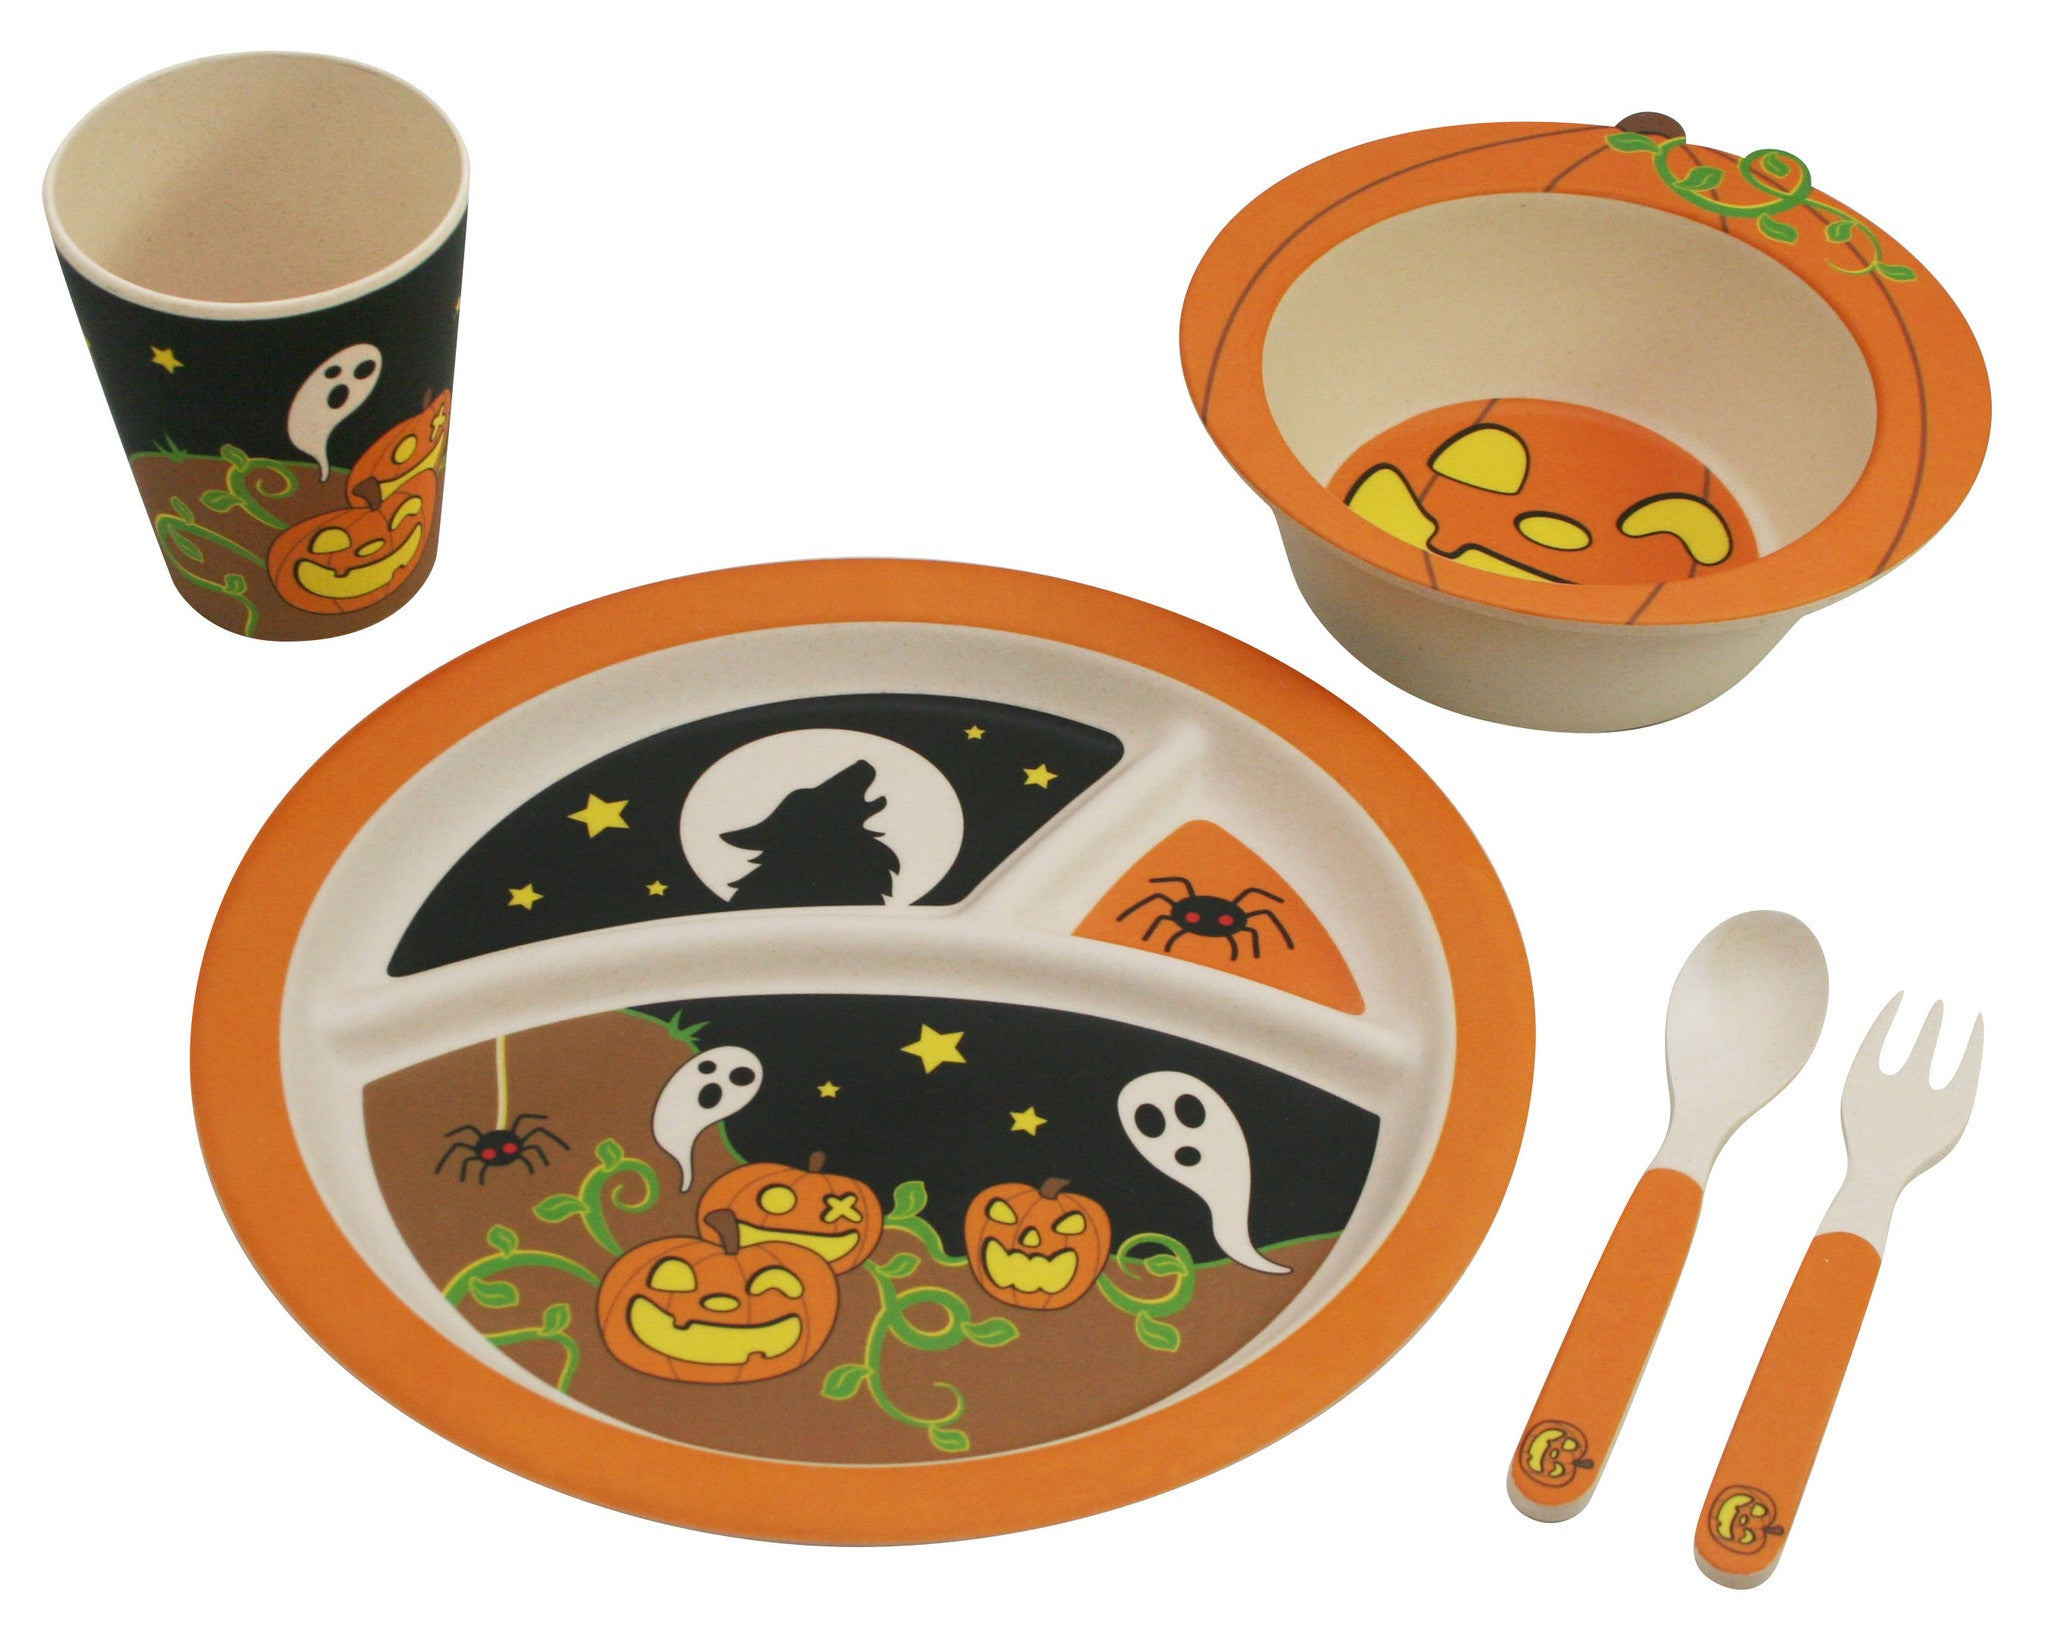 Bamboo Studio Babies/Kids/Toddlers Bamboo Dinnerware Set Halloween Pumpkin 5 Piece  sc 1 th 202 & Halloween Pumpkin Dinnerware Set for Kids from Bamboo Studio 5 ...